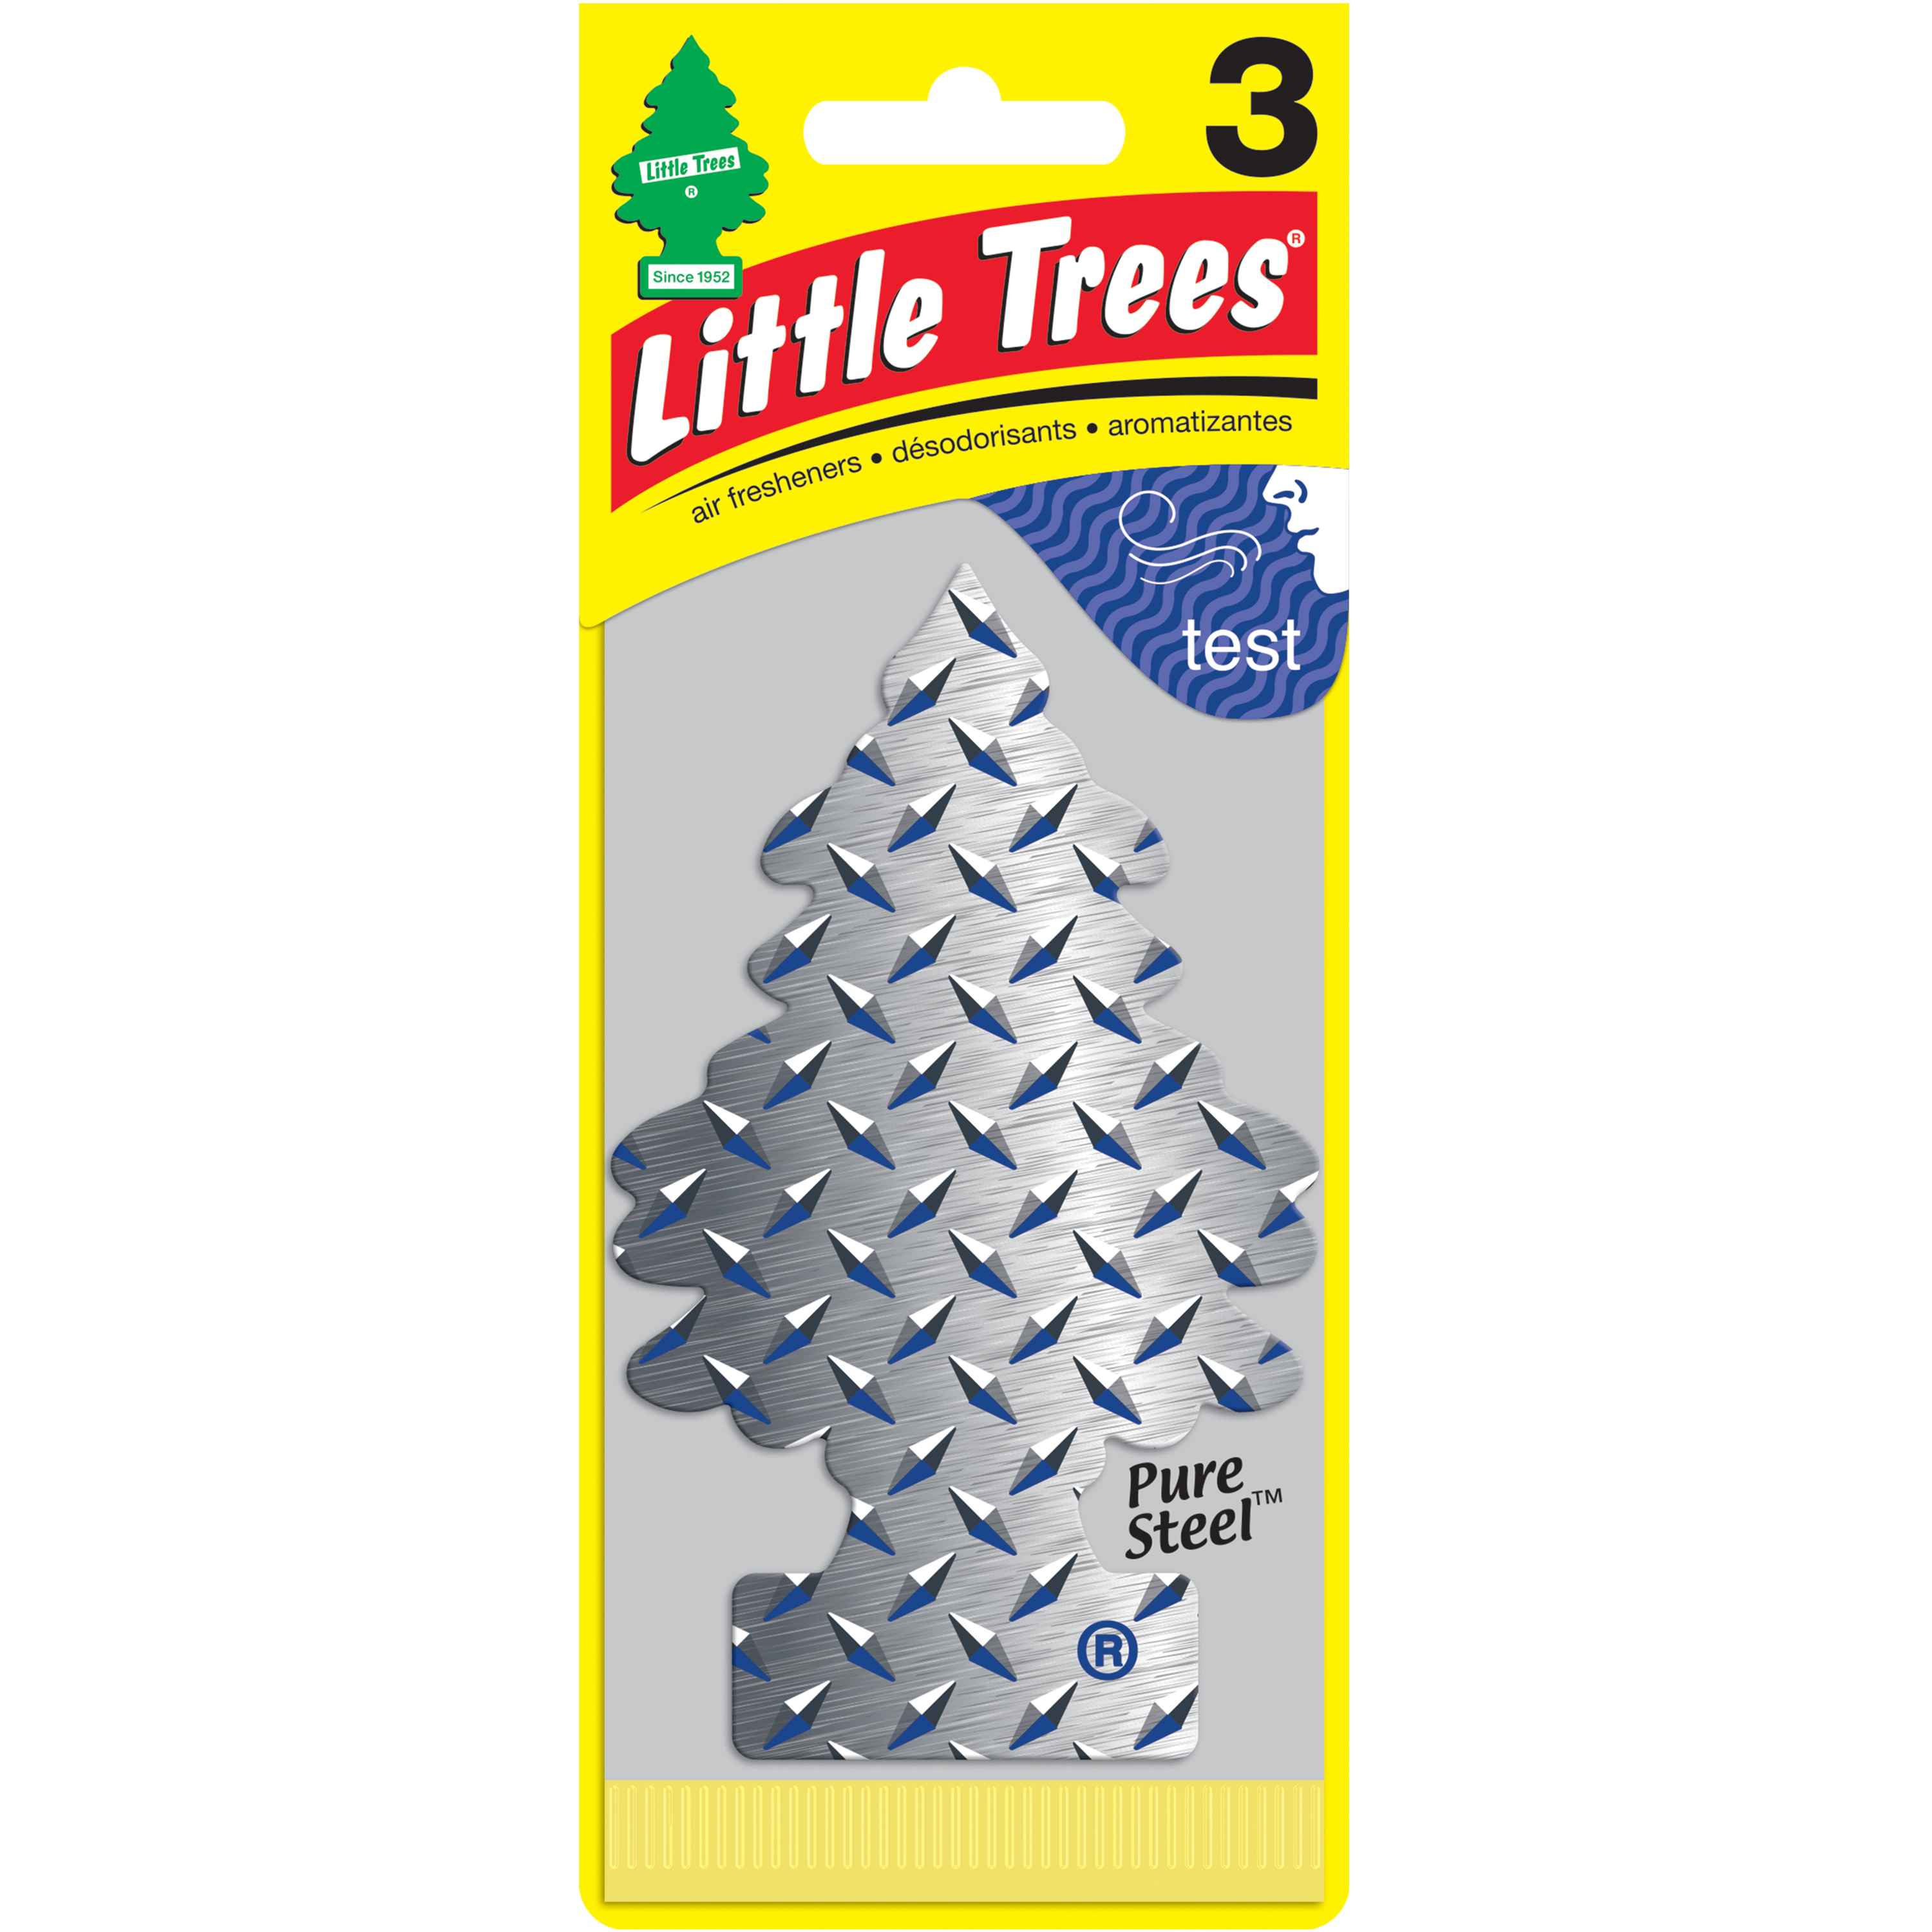 LITTLE TREES air freshener Pure Steel 3-Pack